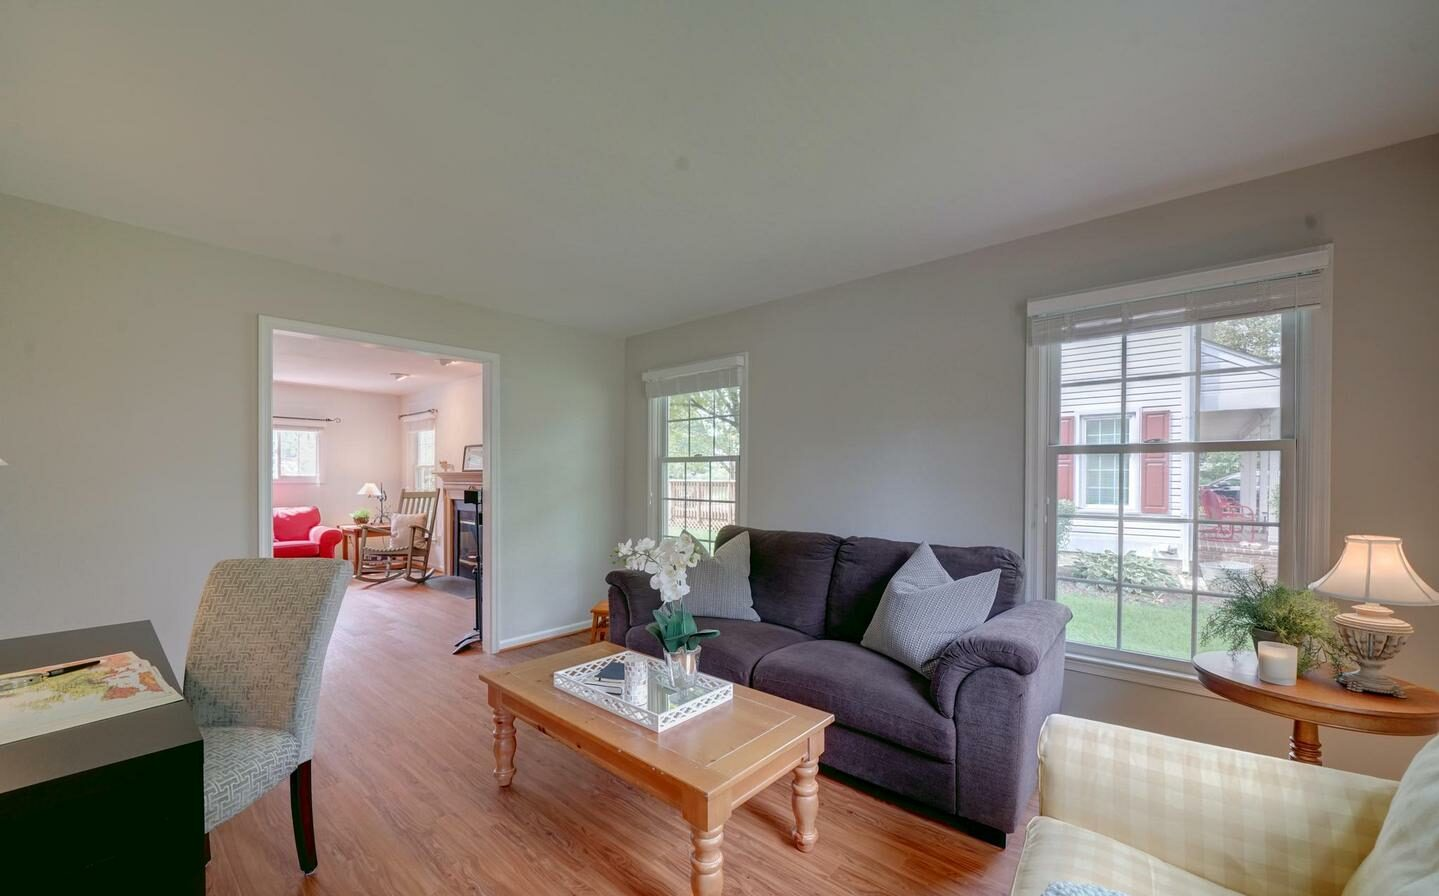 homes for sale in mount airy md images